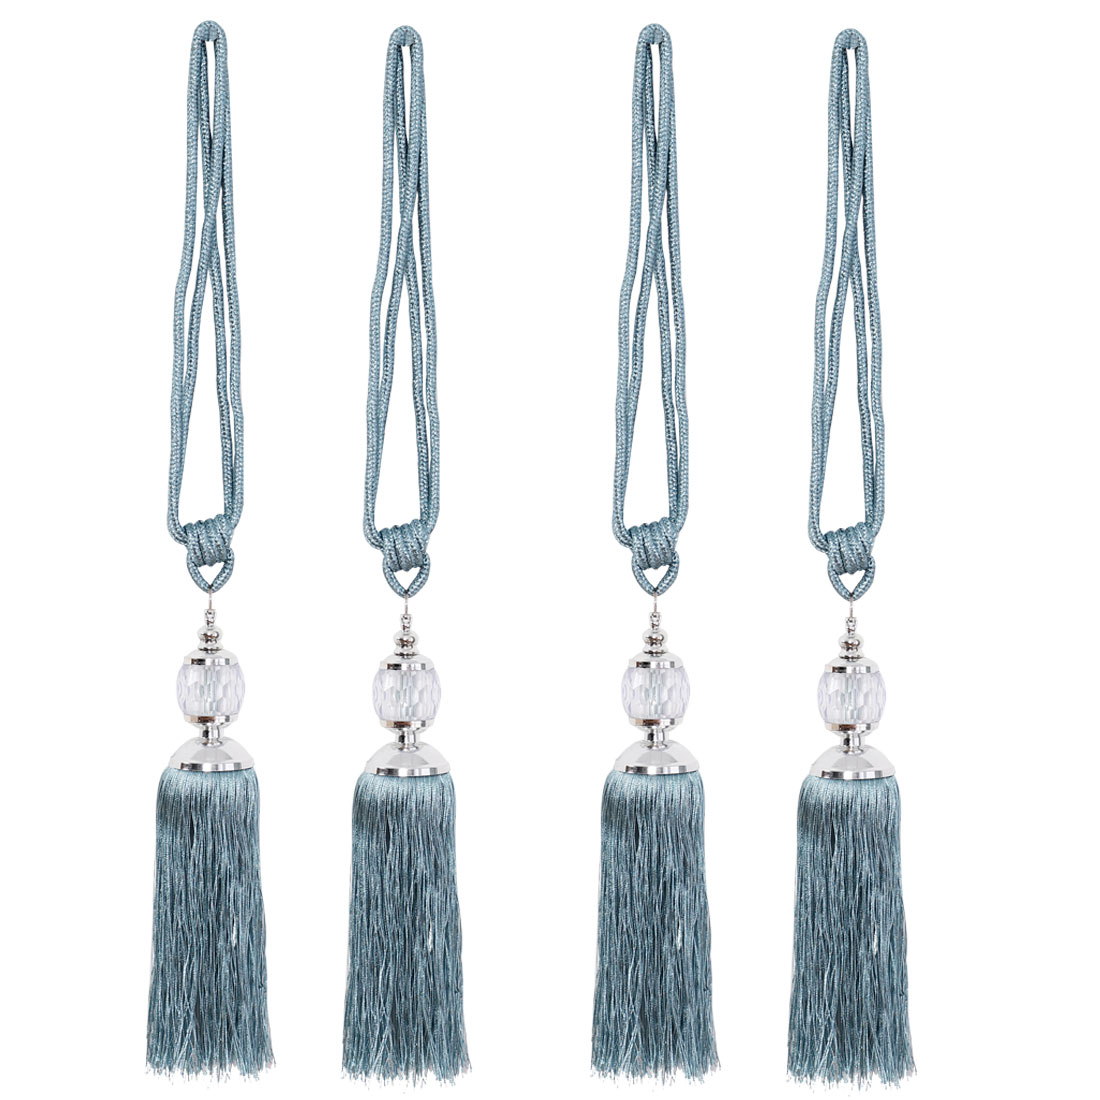 "Tassel Curtain Tieback 24.8"" Holdback Decorative Rope Curtain 4pcs, Blue"